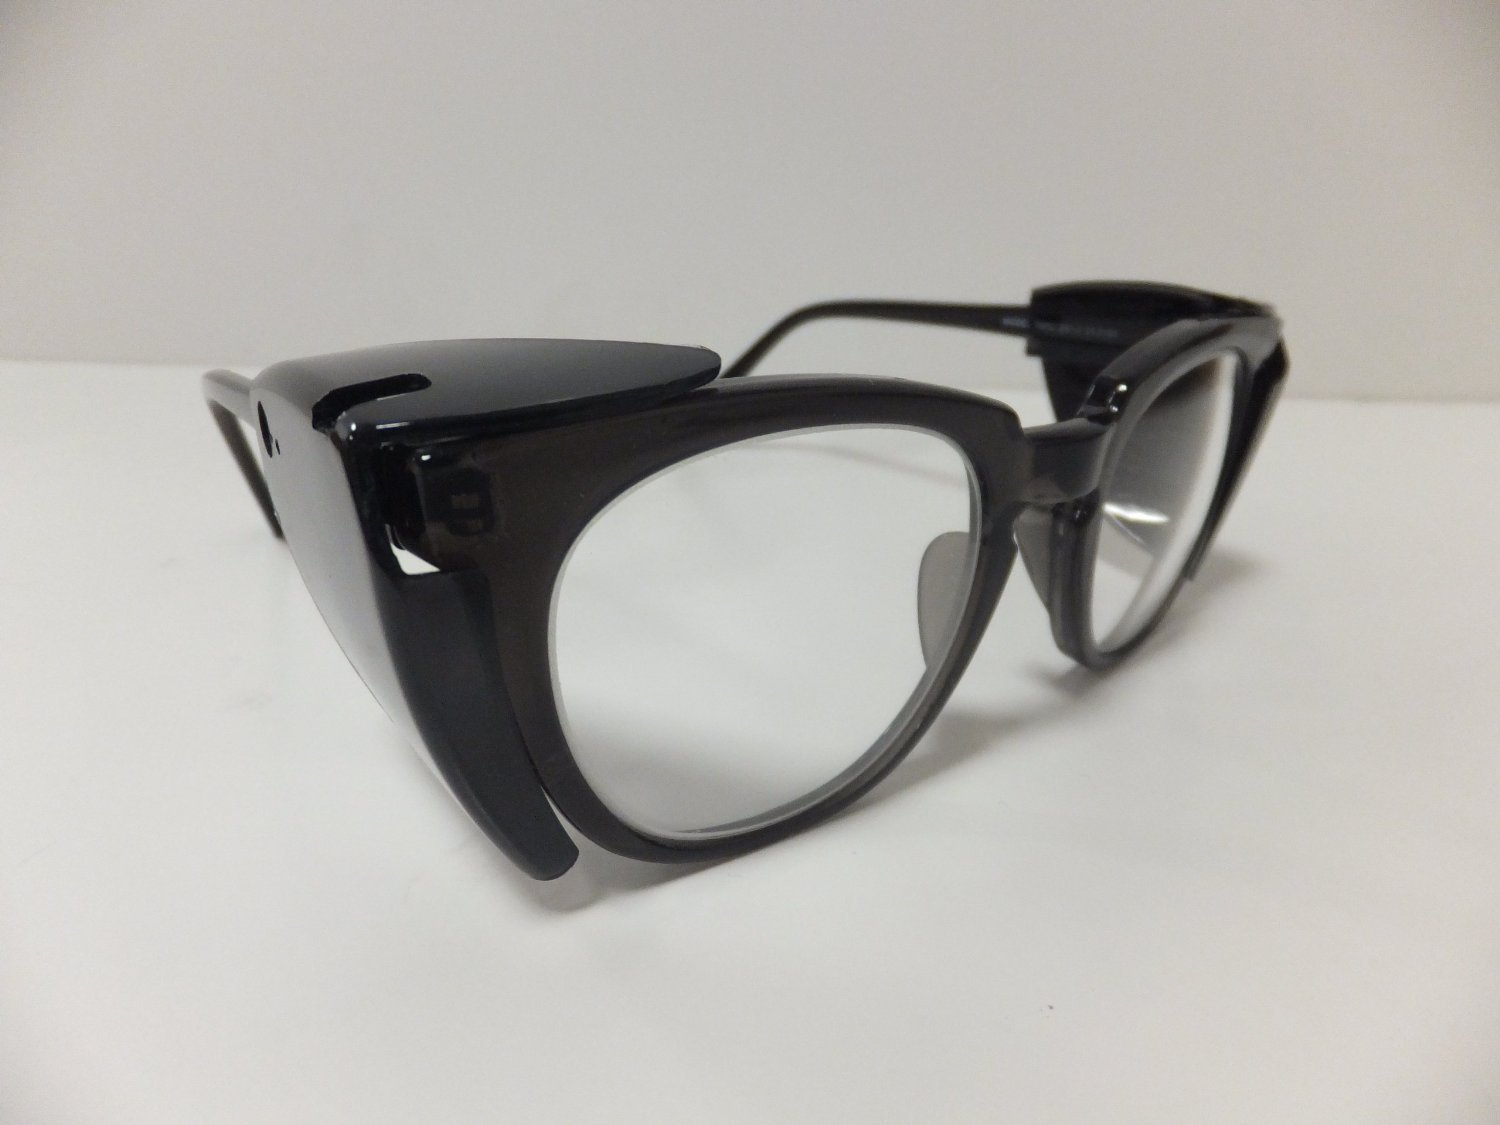 Radiation Safety Glasses in a Titmus Frame with .75 Pb Lead Lens